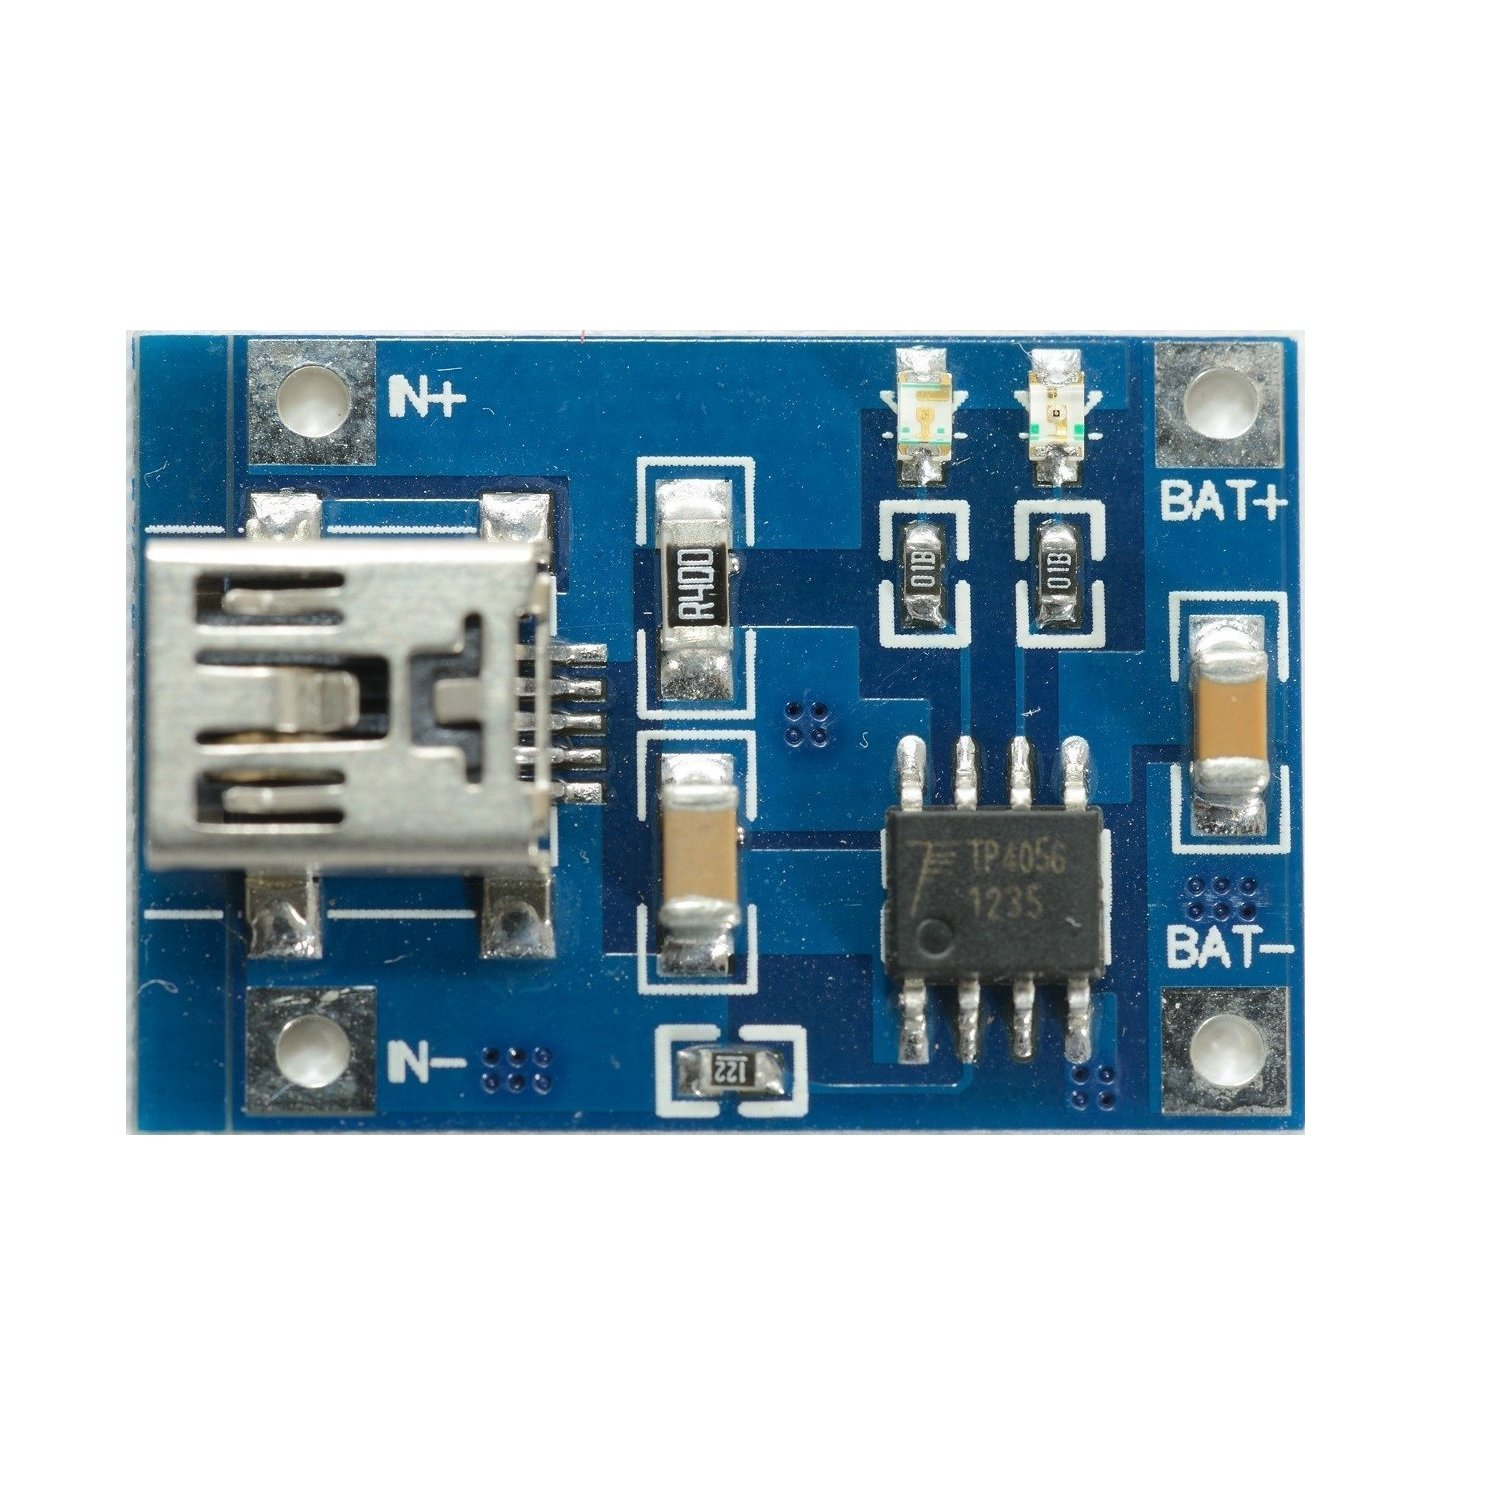 Tp4056 1a Li Ion Lithium Battery Charging Module Mini Usb Robu All About Hobby Charger Schematic Diagram Hover To Zoom